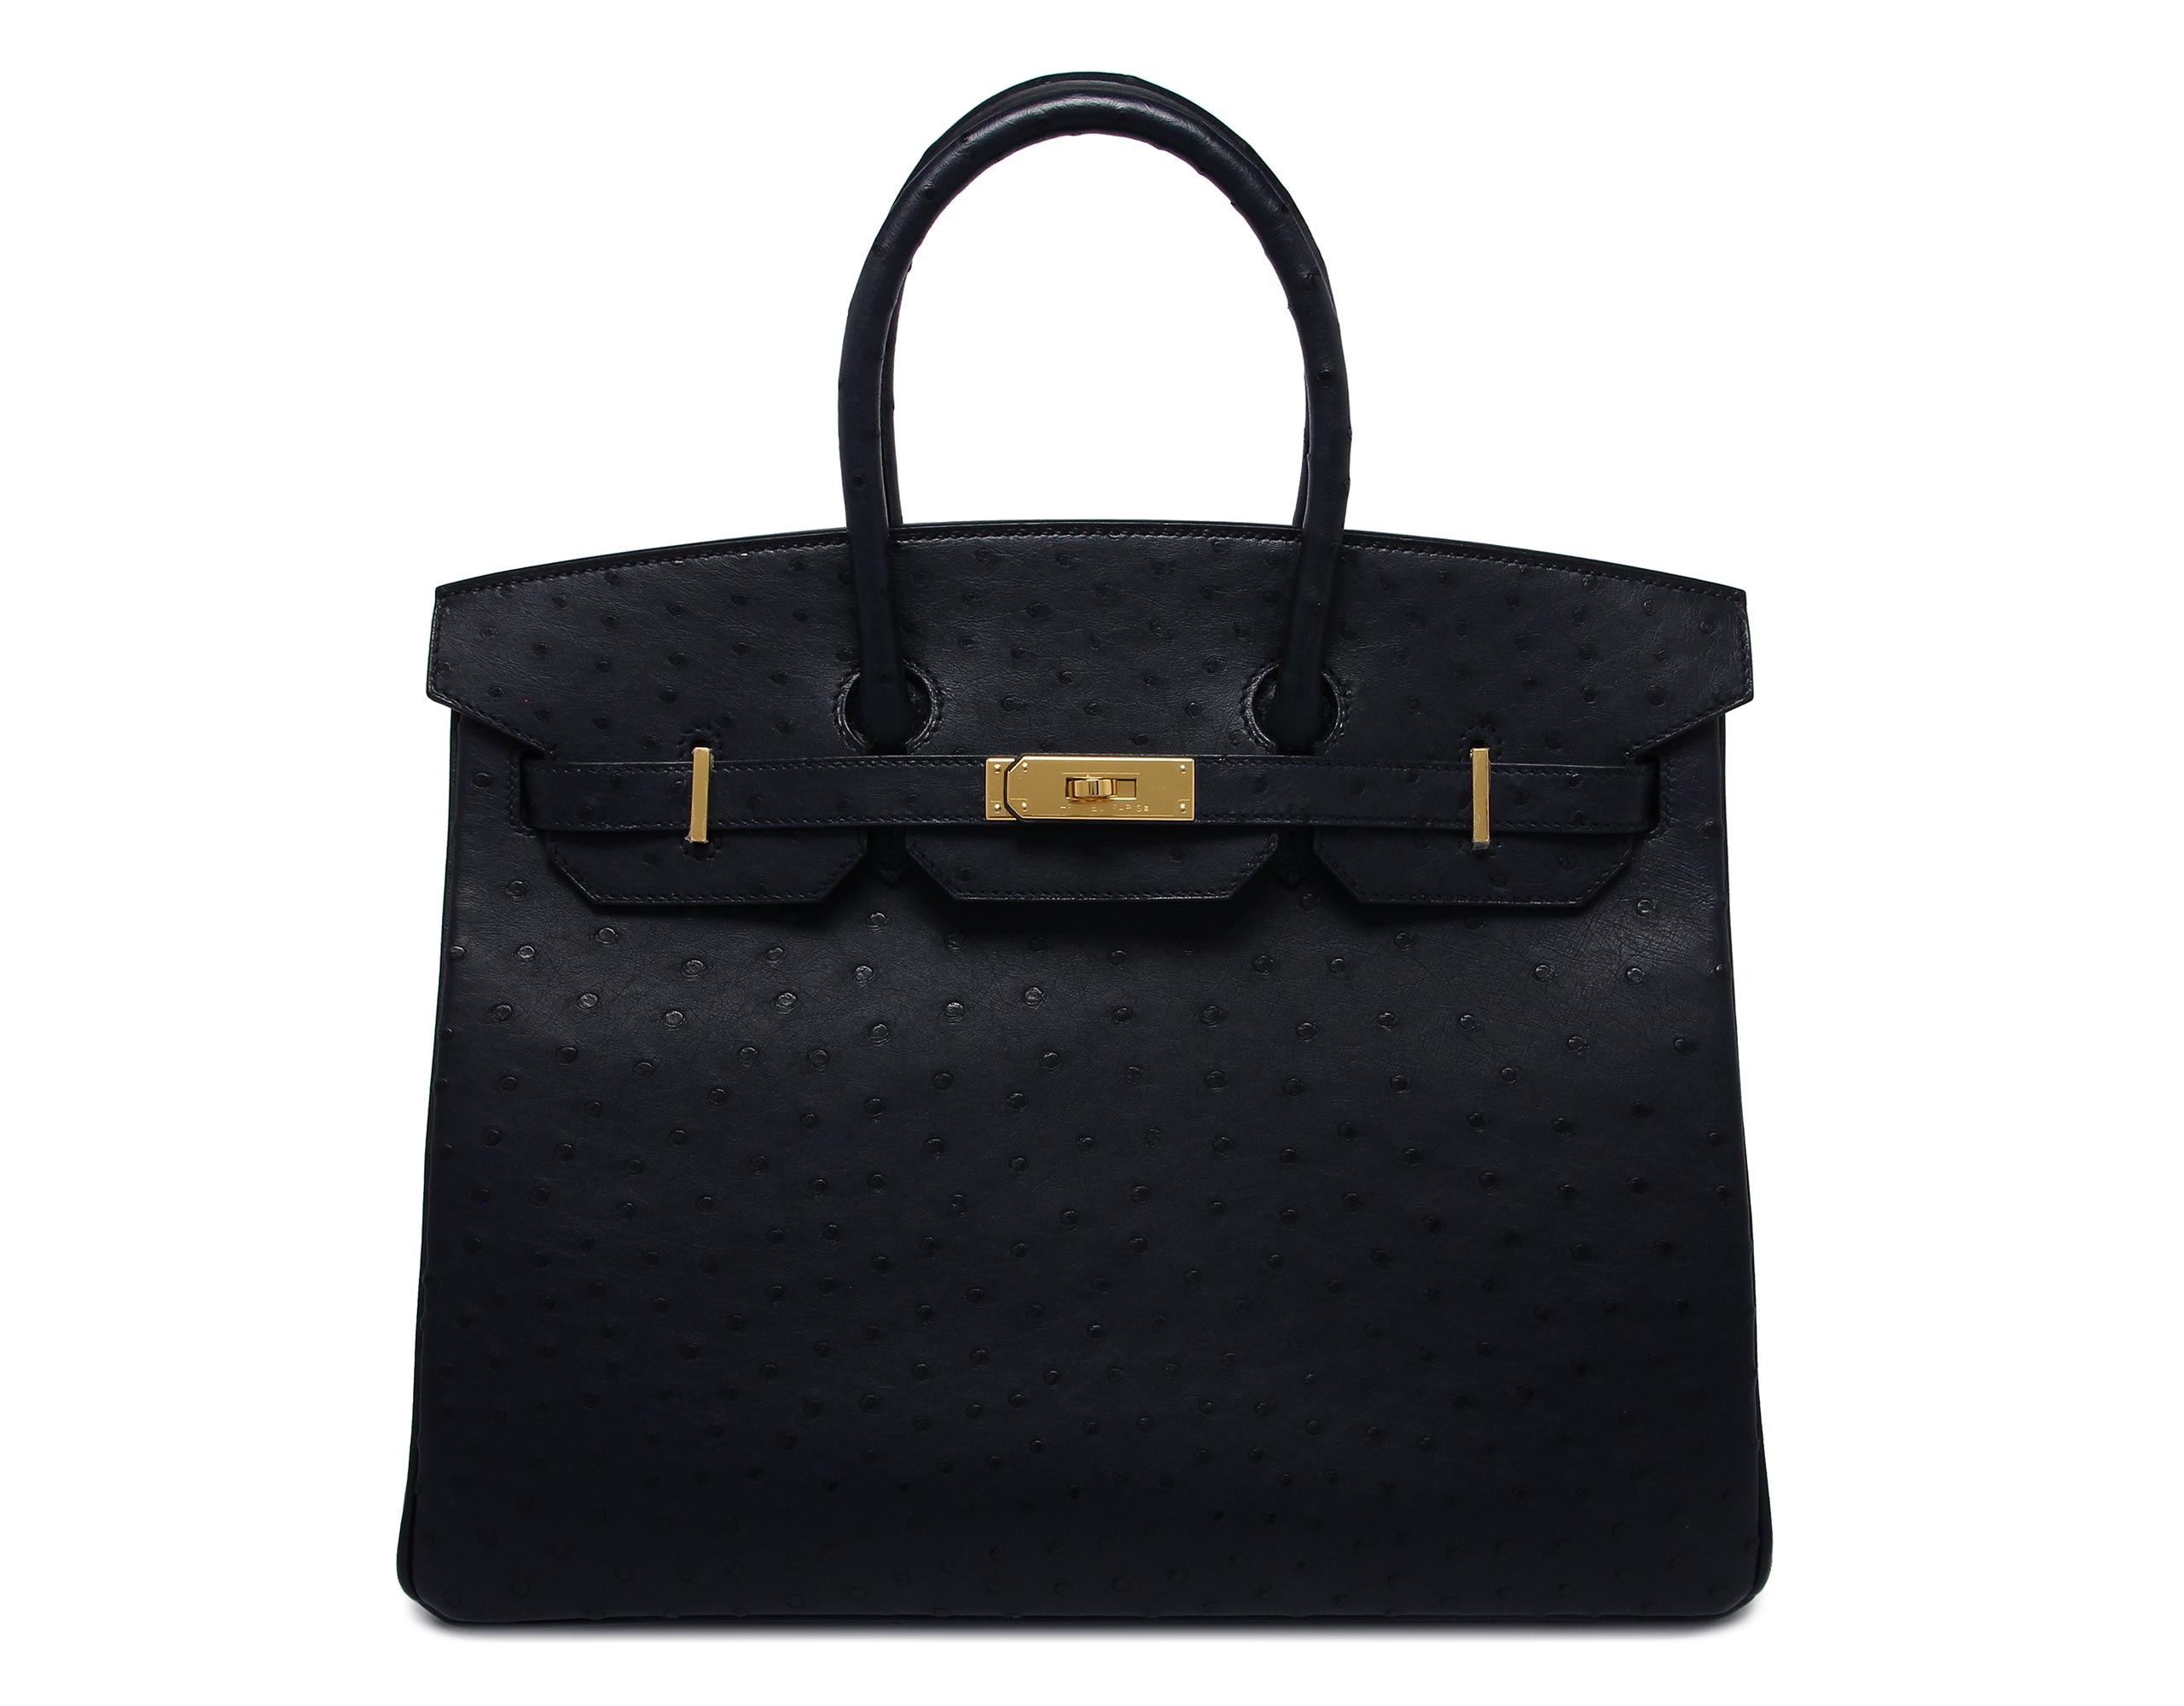 Hermes Birkin Bags For Sale  ce70cdee34207